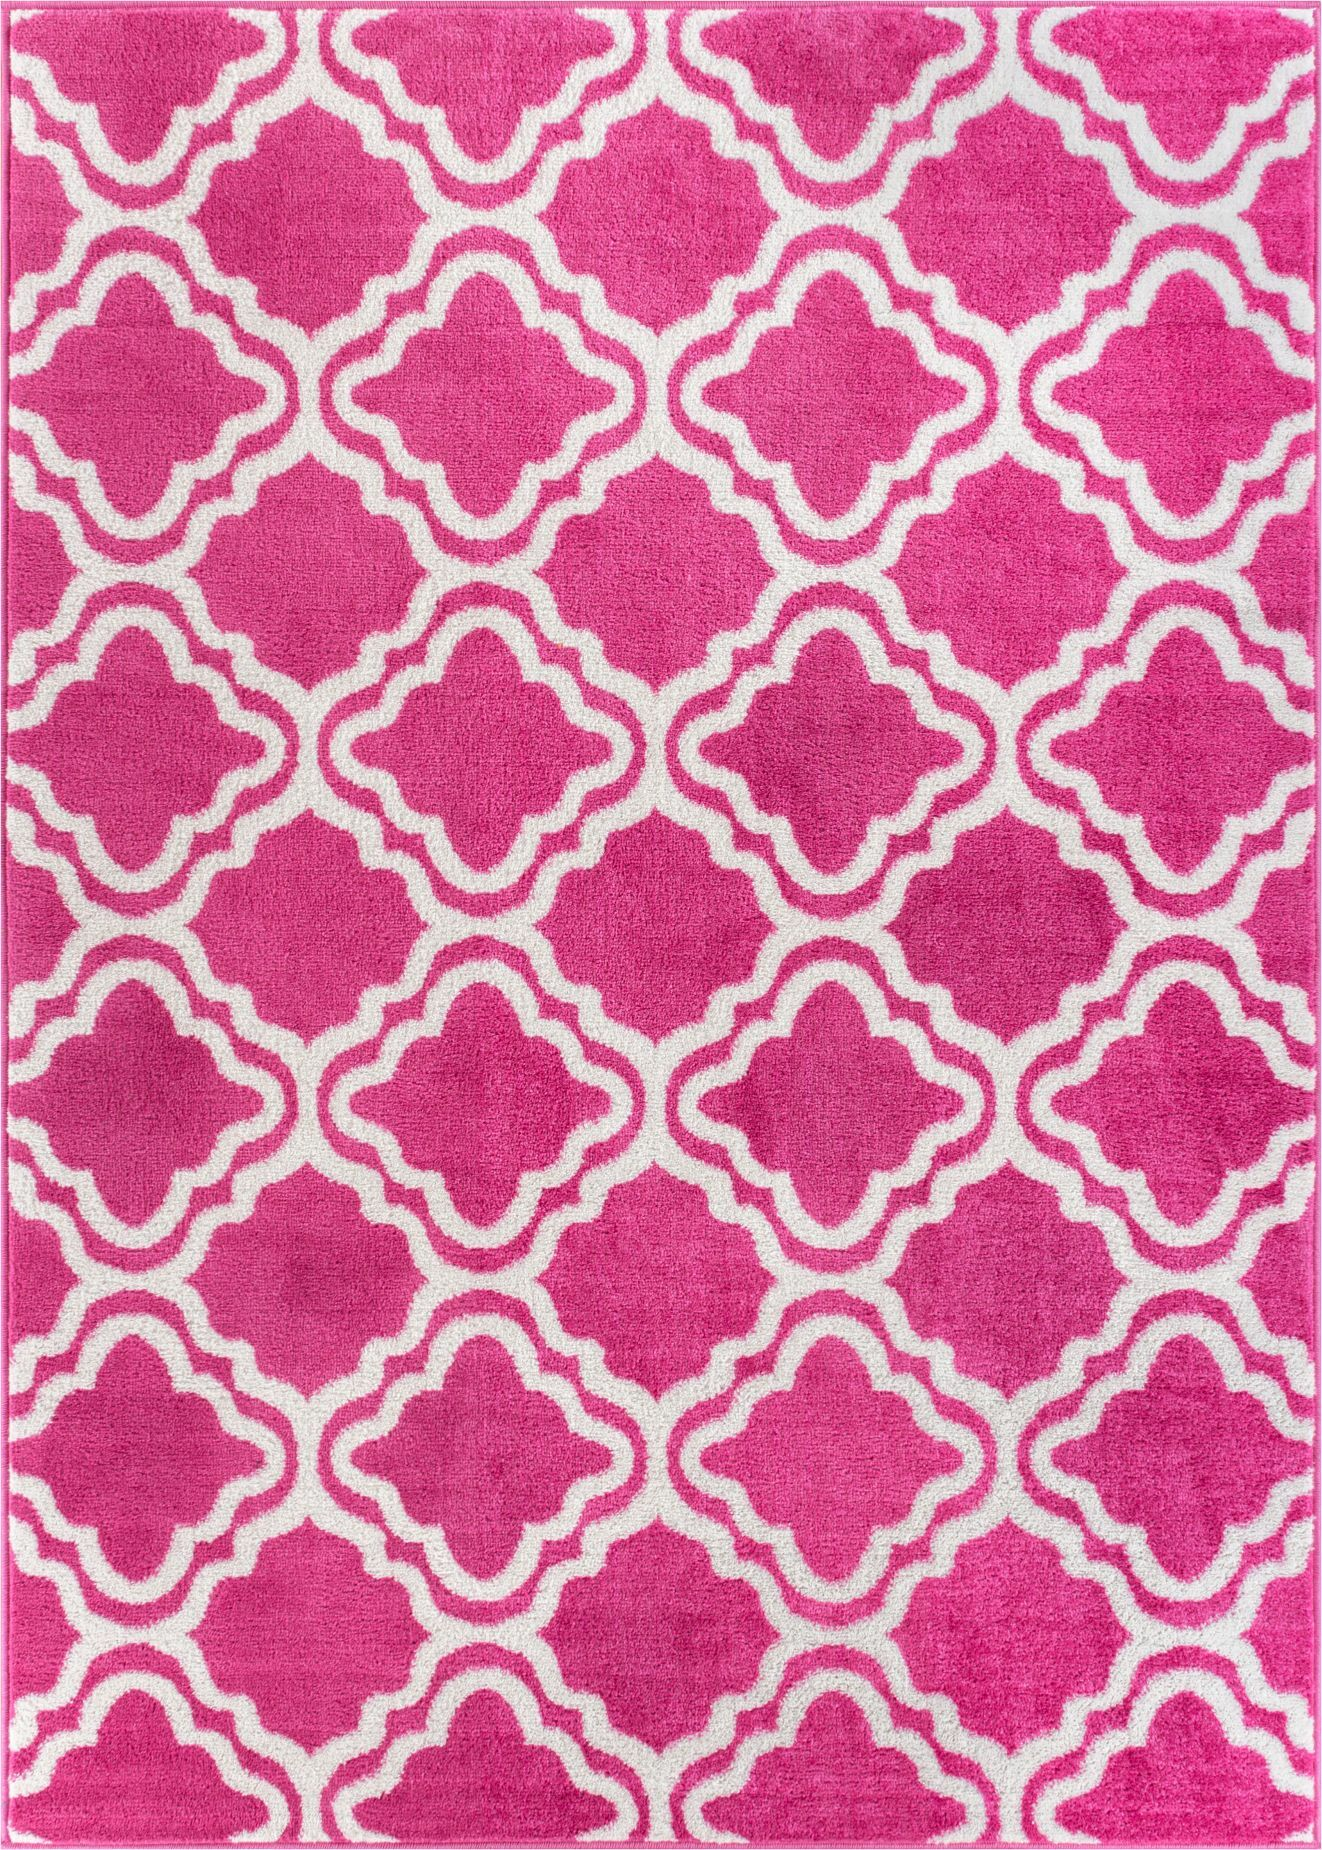 Juliet Calipso Pink Area Rug Rug Size: 5' x 7'